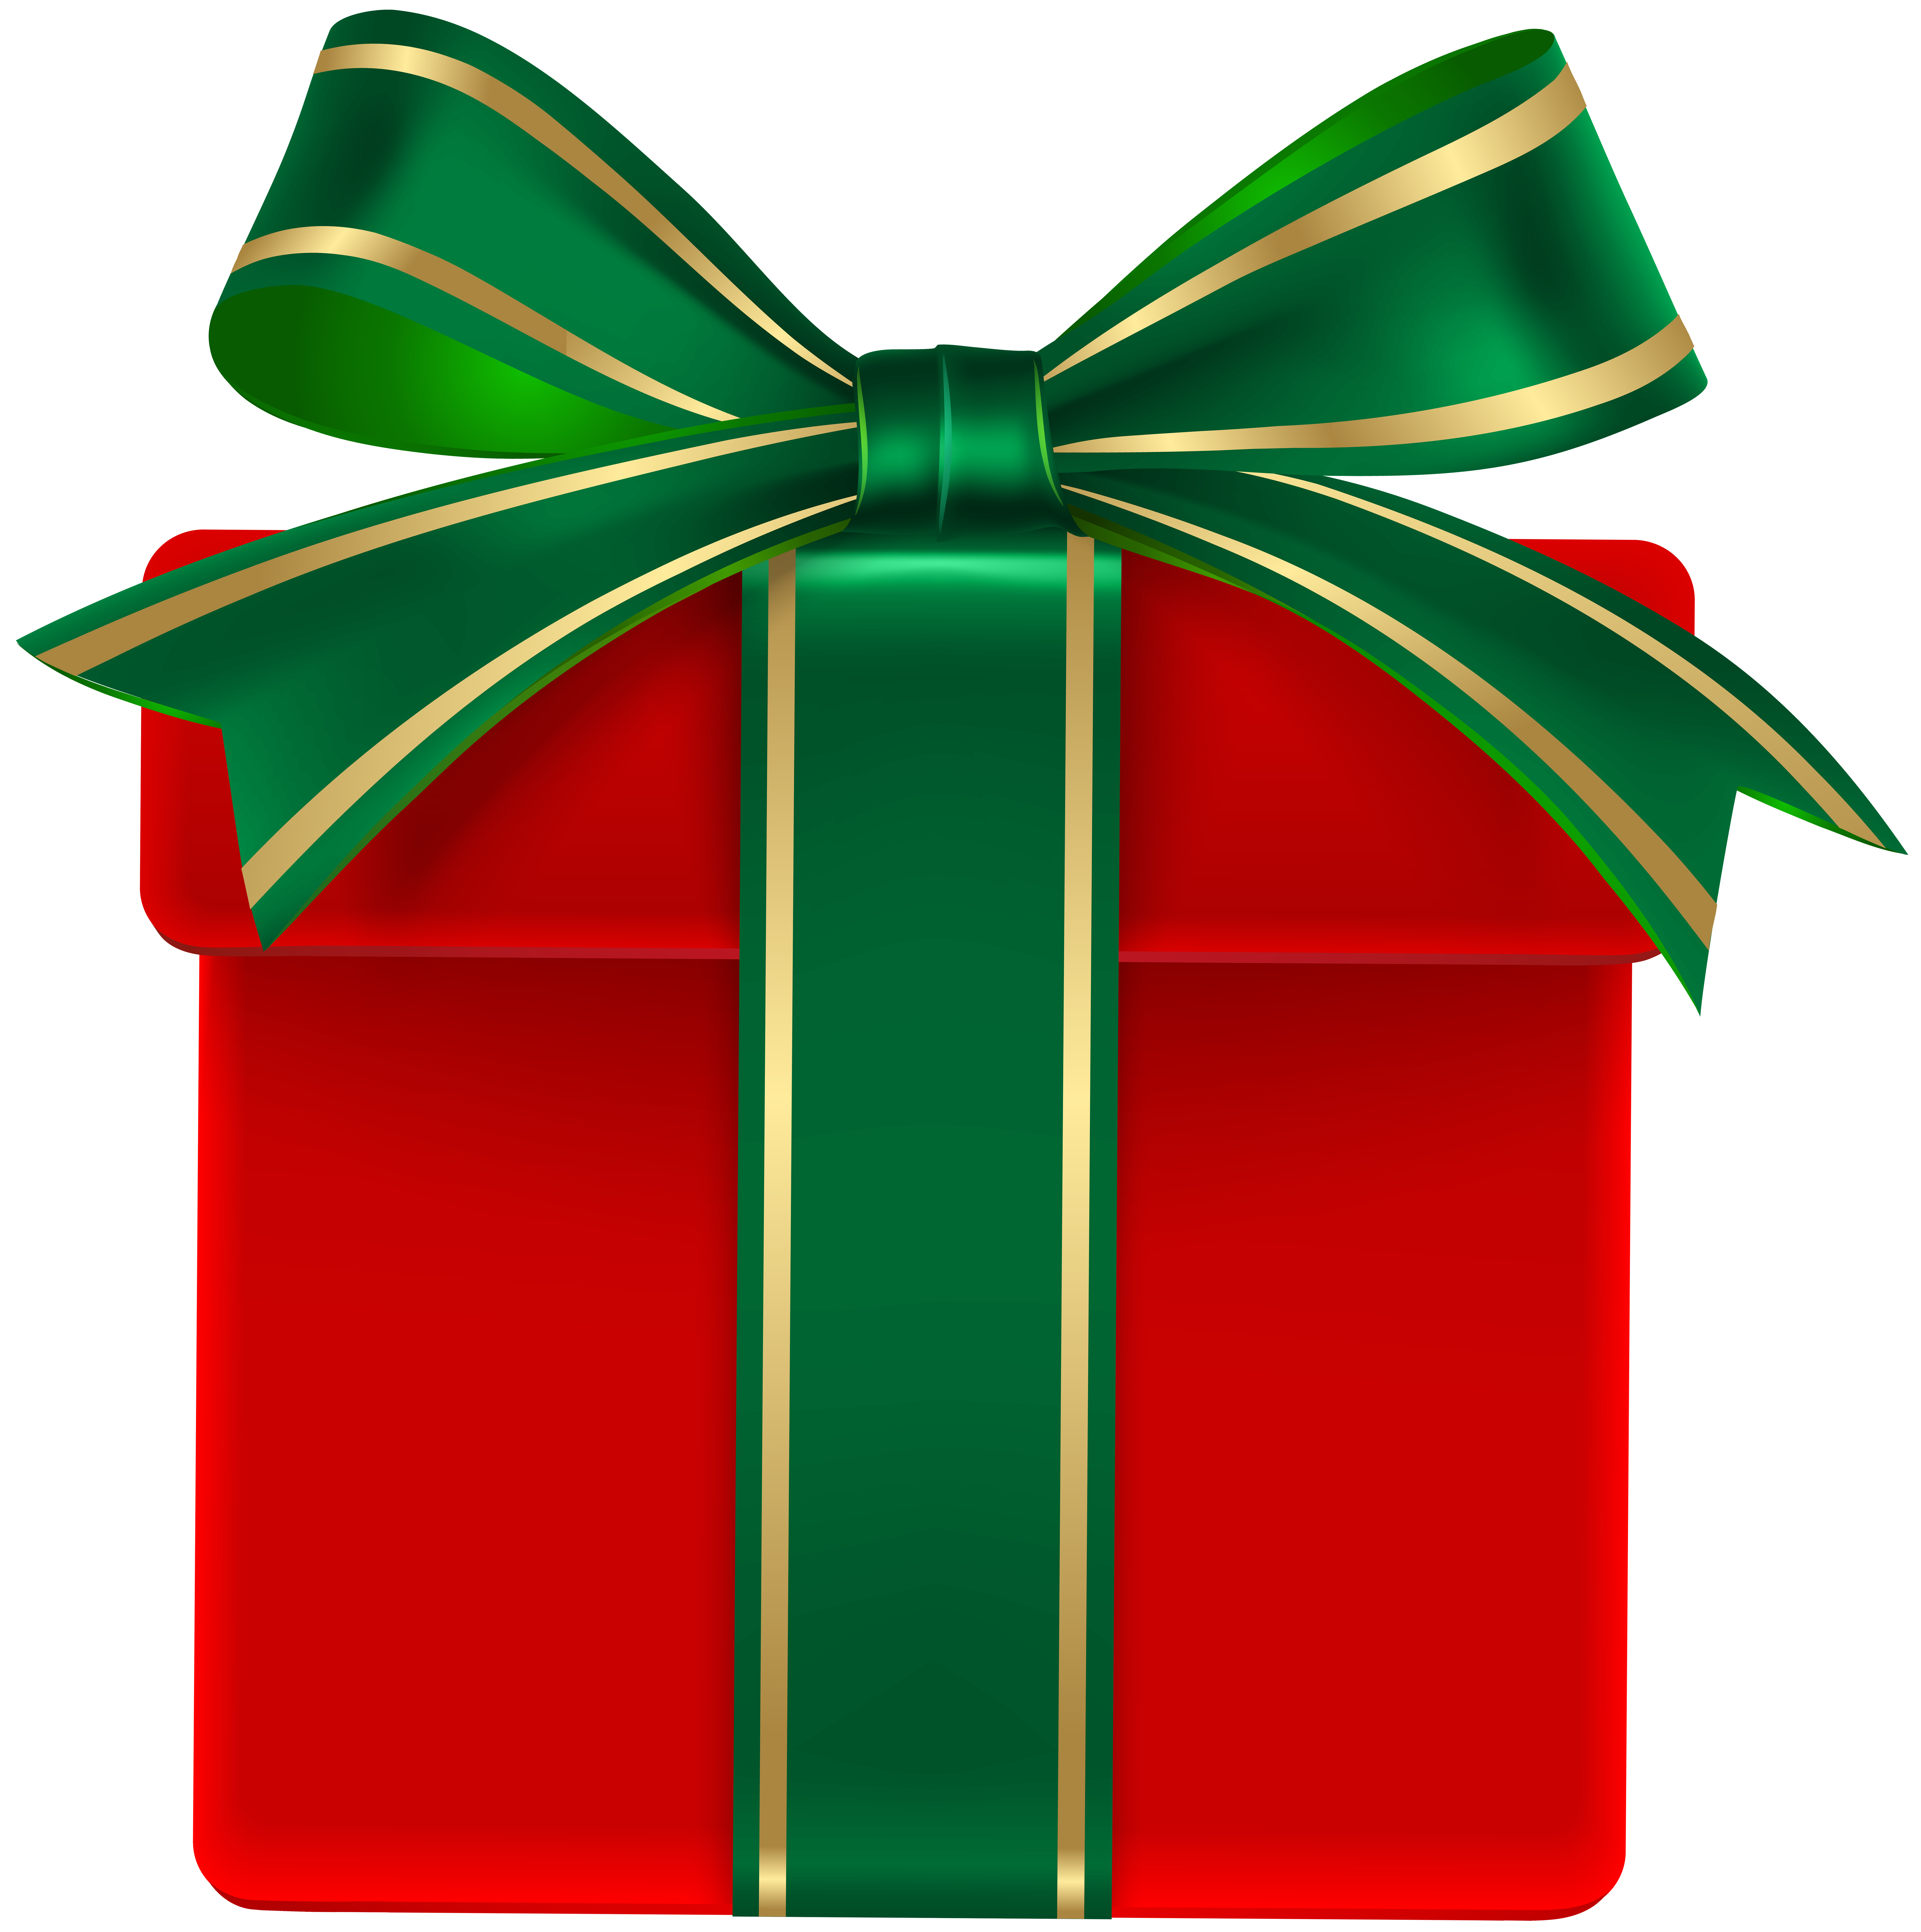 Clipart bow gift bow. Red box with green